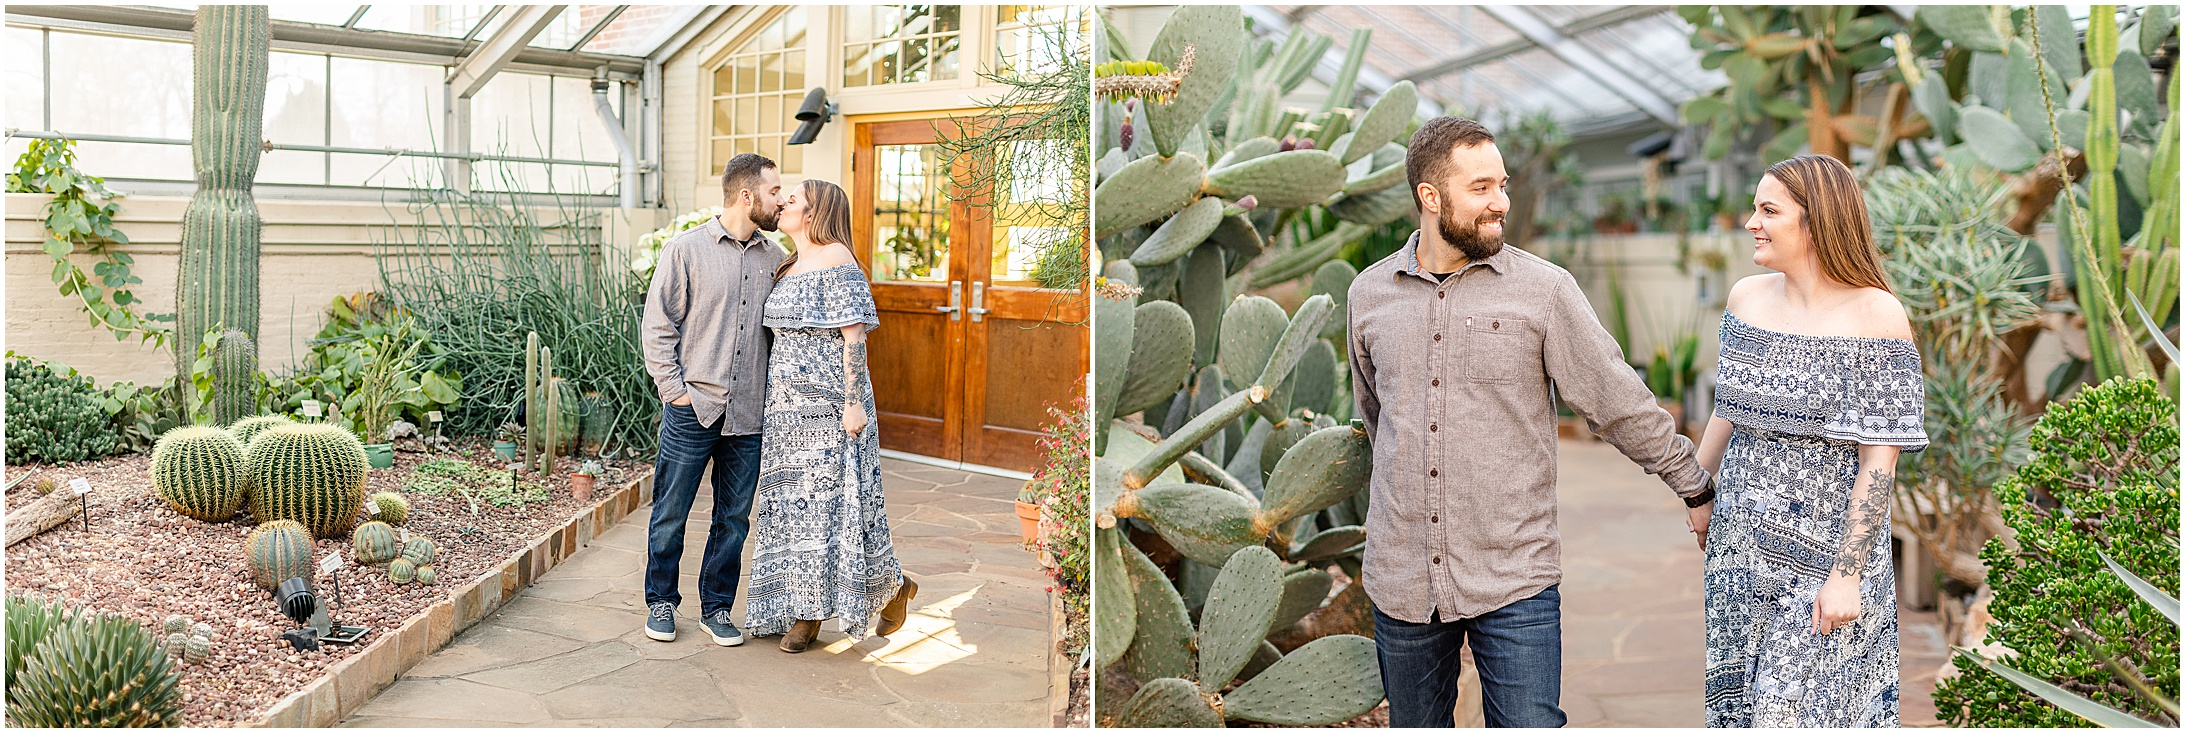 Rawlings-Conservatory-Engagement-Photos_0278.jpg